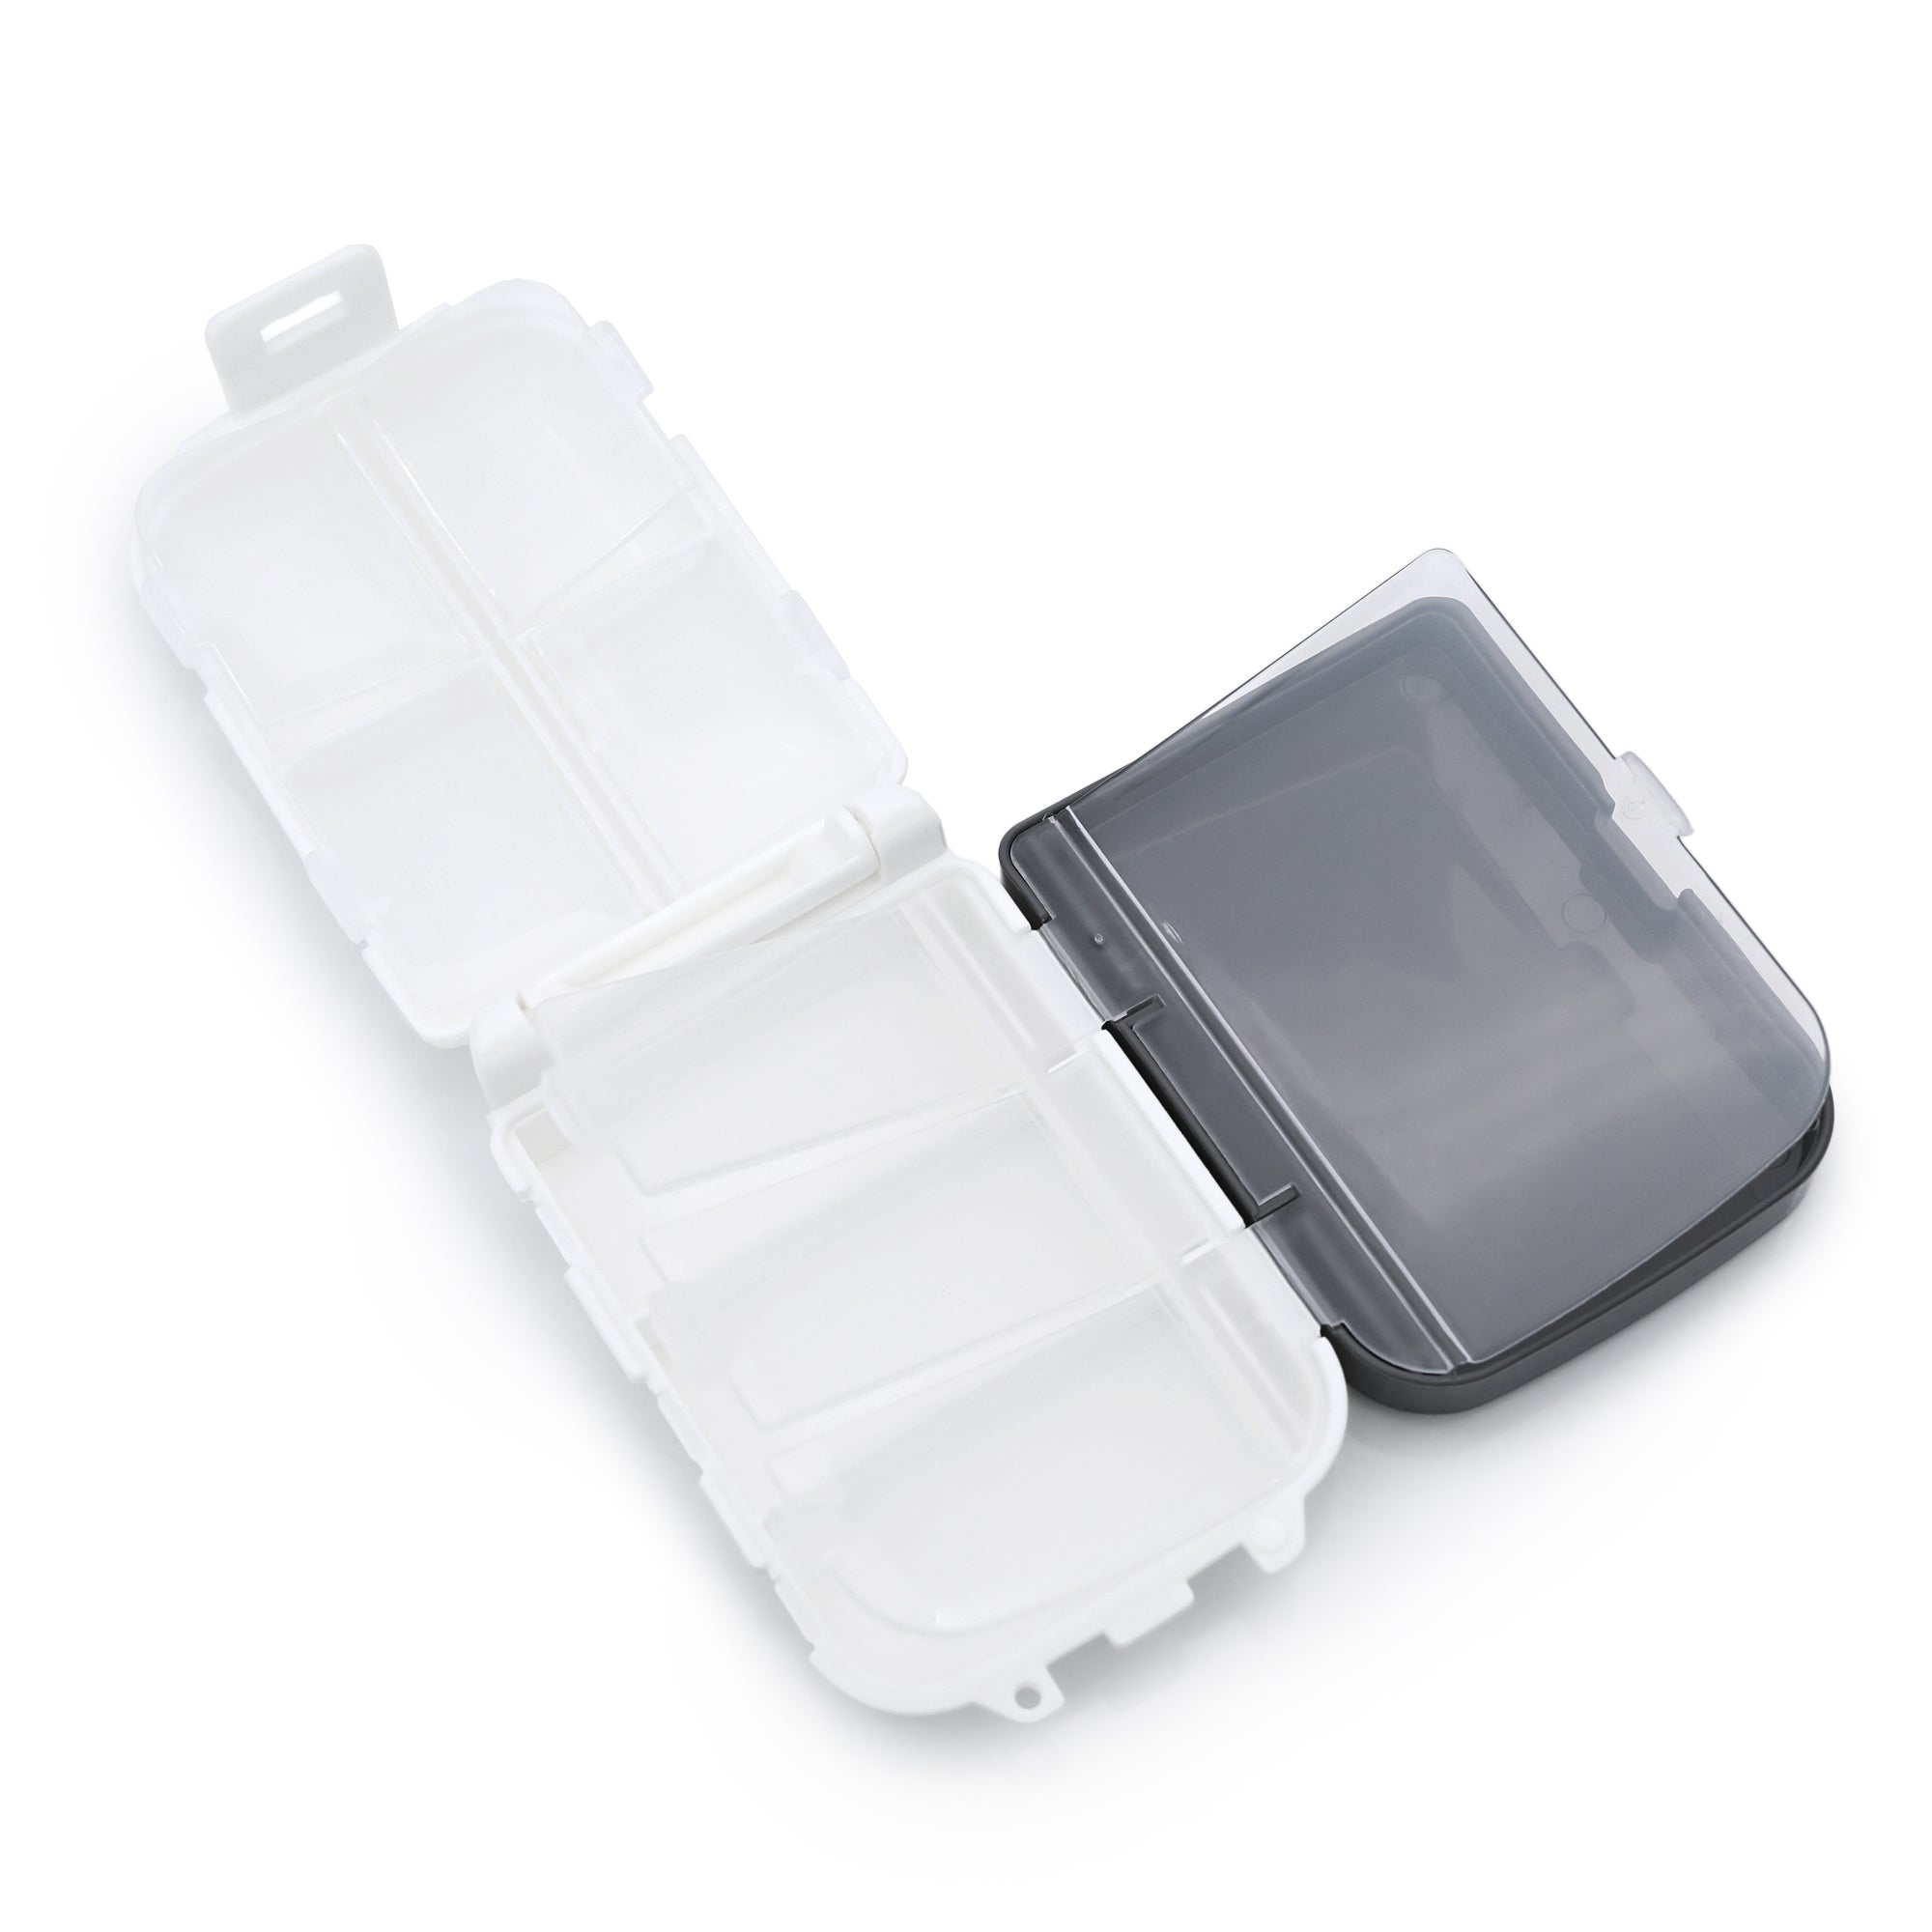 8 Slots Container for Watch Band Spring Bars, Buckles and Watch Parts, White